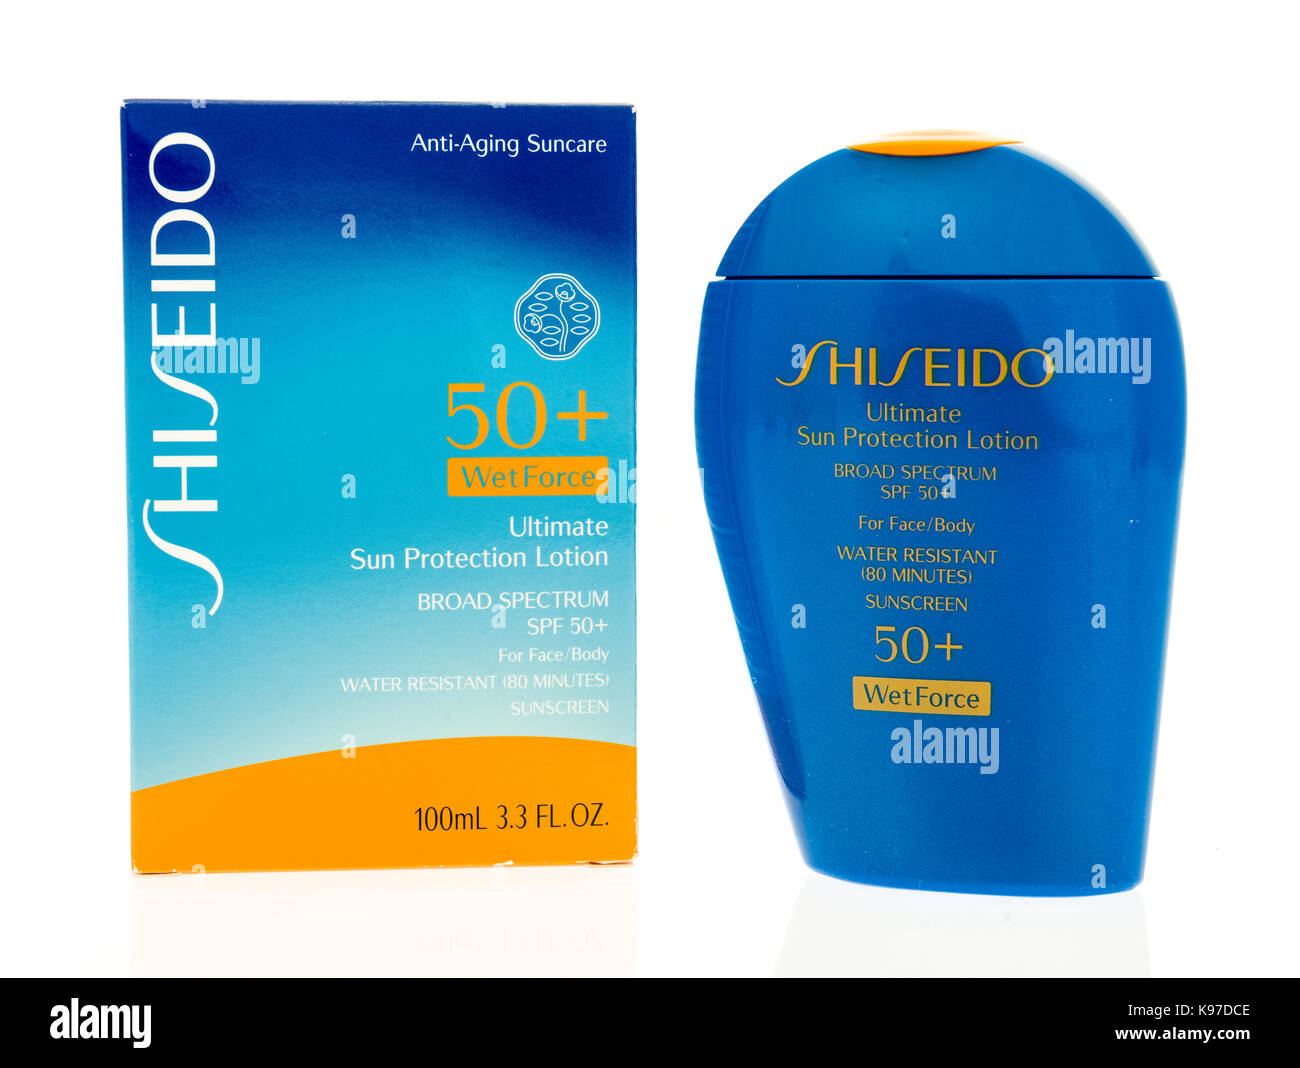 Winneconne, WI - 20 September 2017:  A bottle of Shiseido sunscreen on an isolated background. - Stock Image